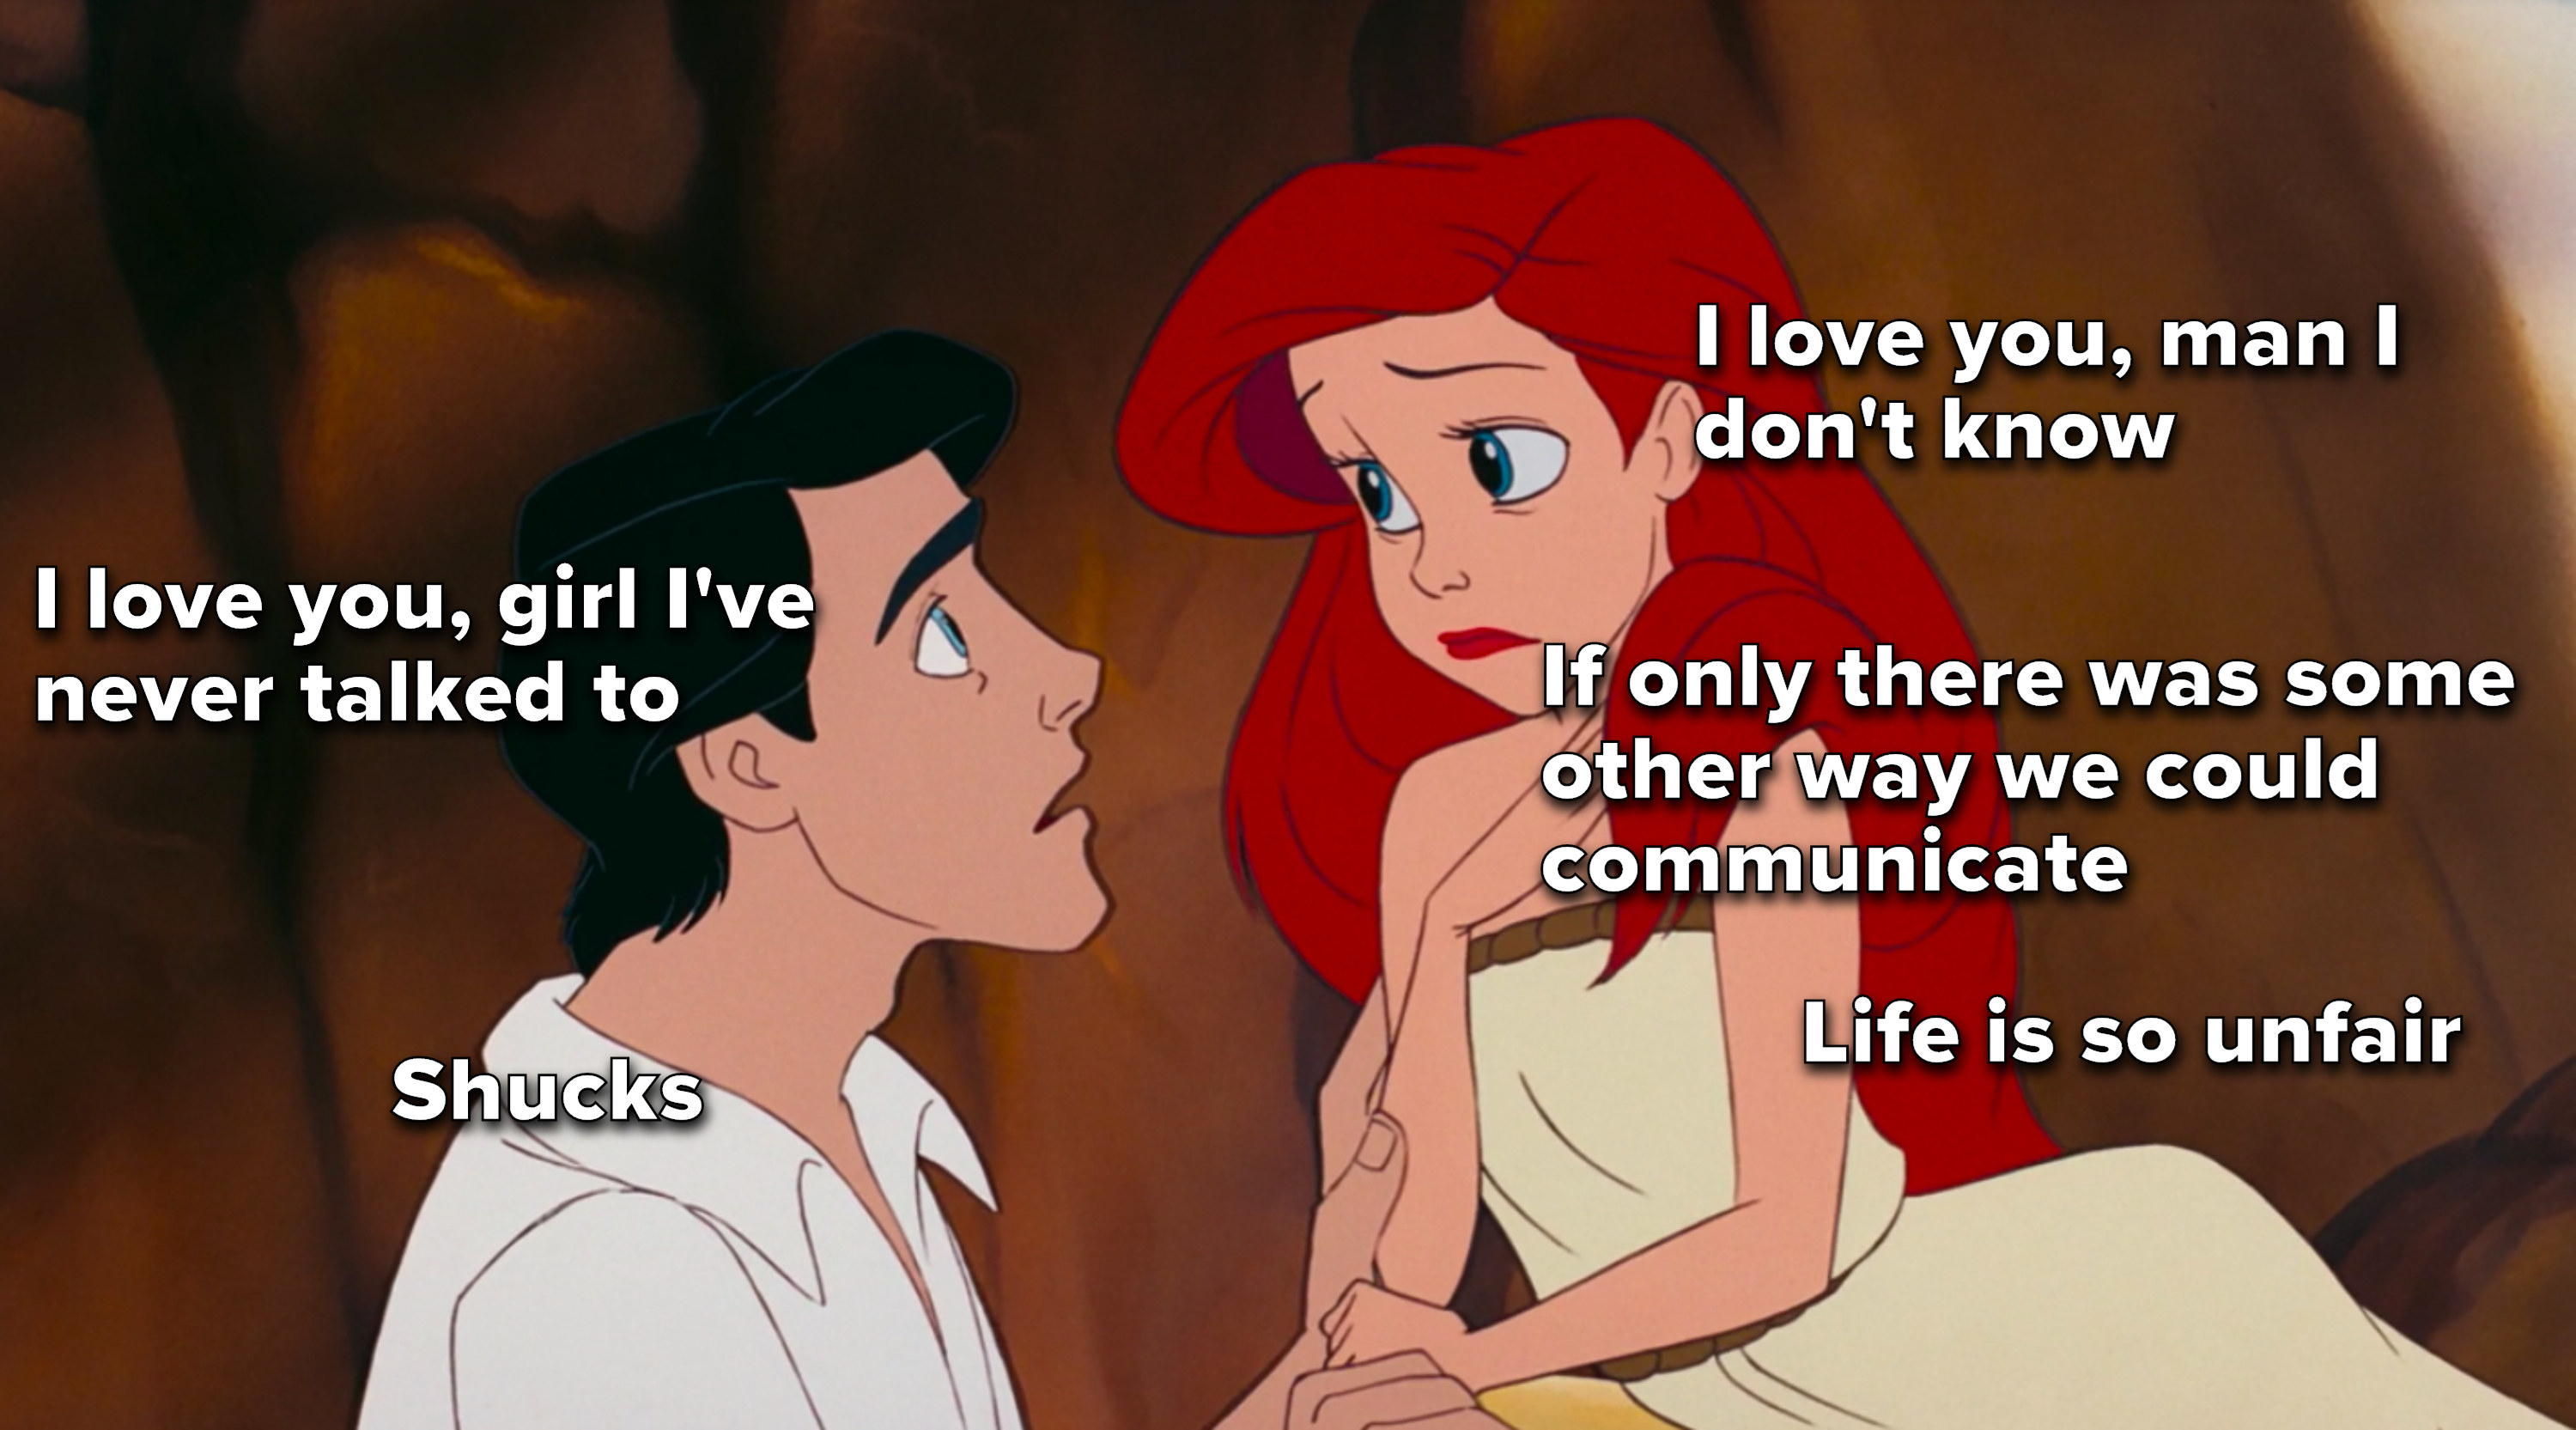 """Ariel: """"I love you man I don't know, if only there was some other way to communicate, life is so unfair,"""" Eric: """"I love you girl I've never talked to, shucks"""""""